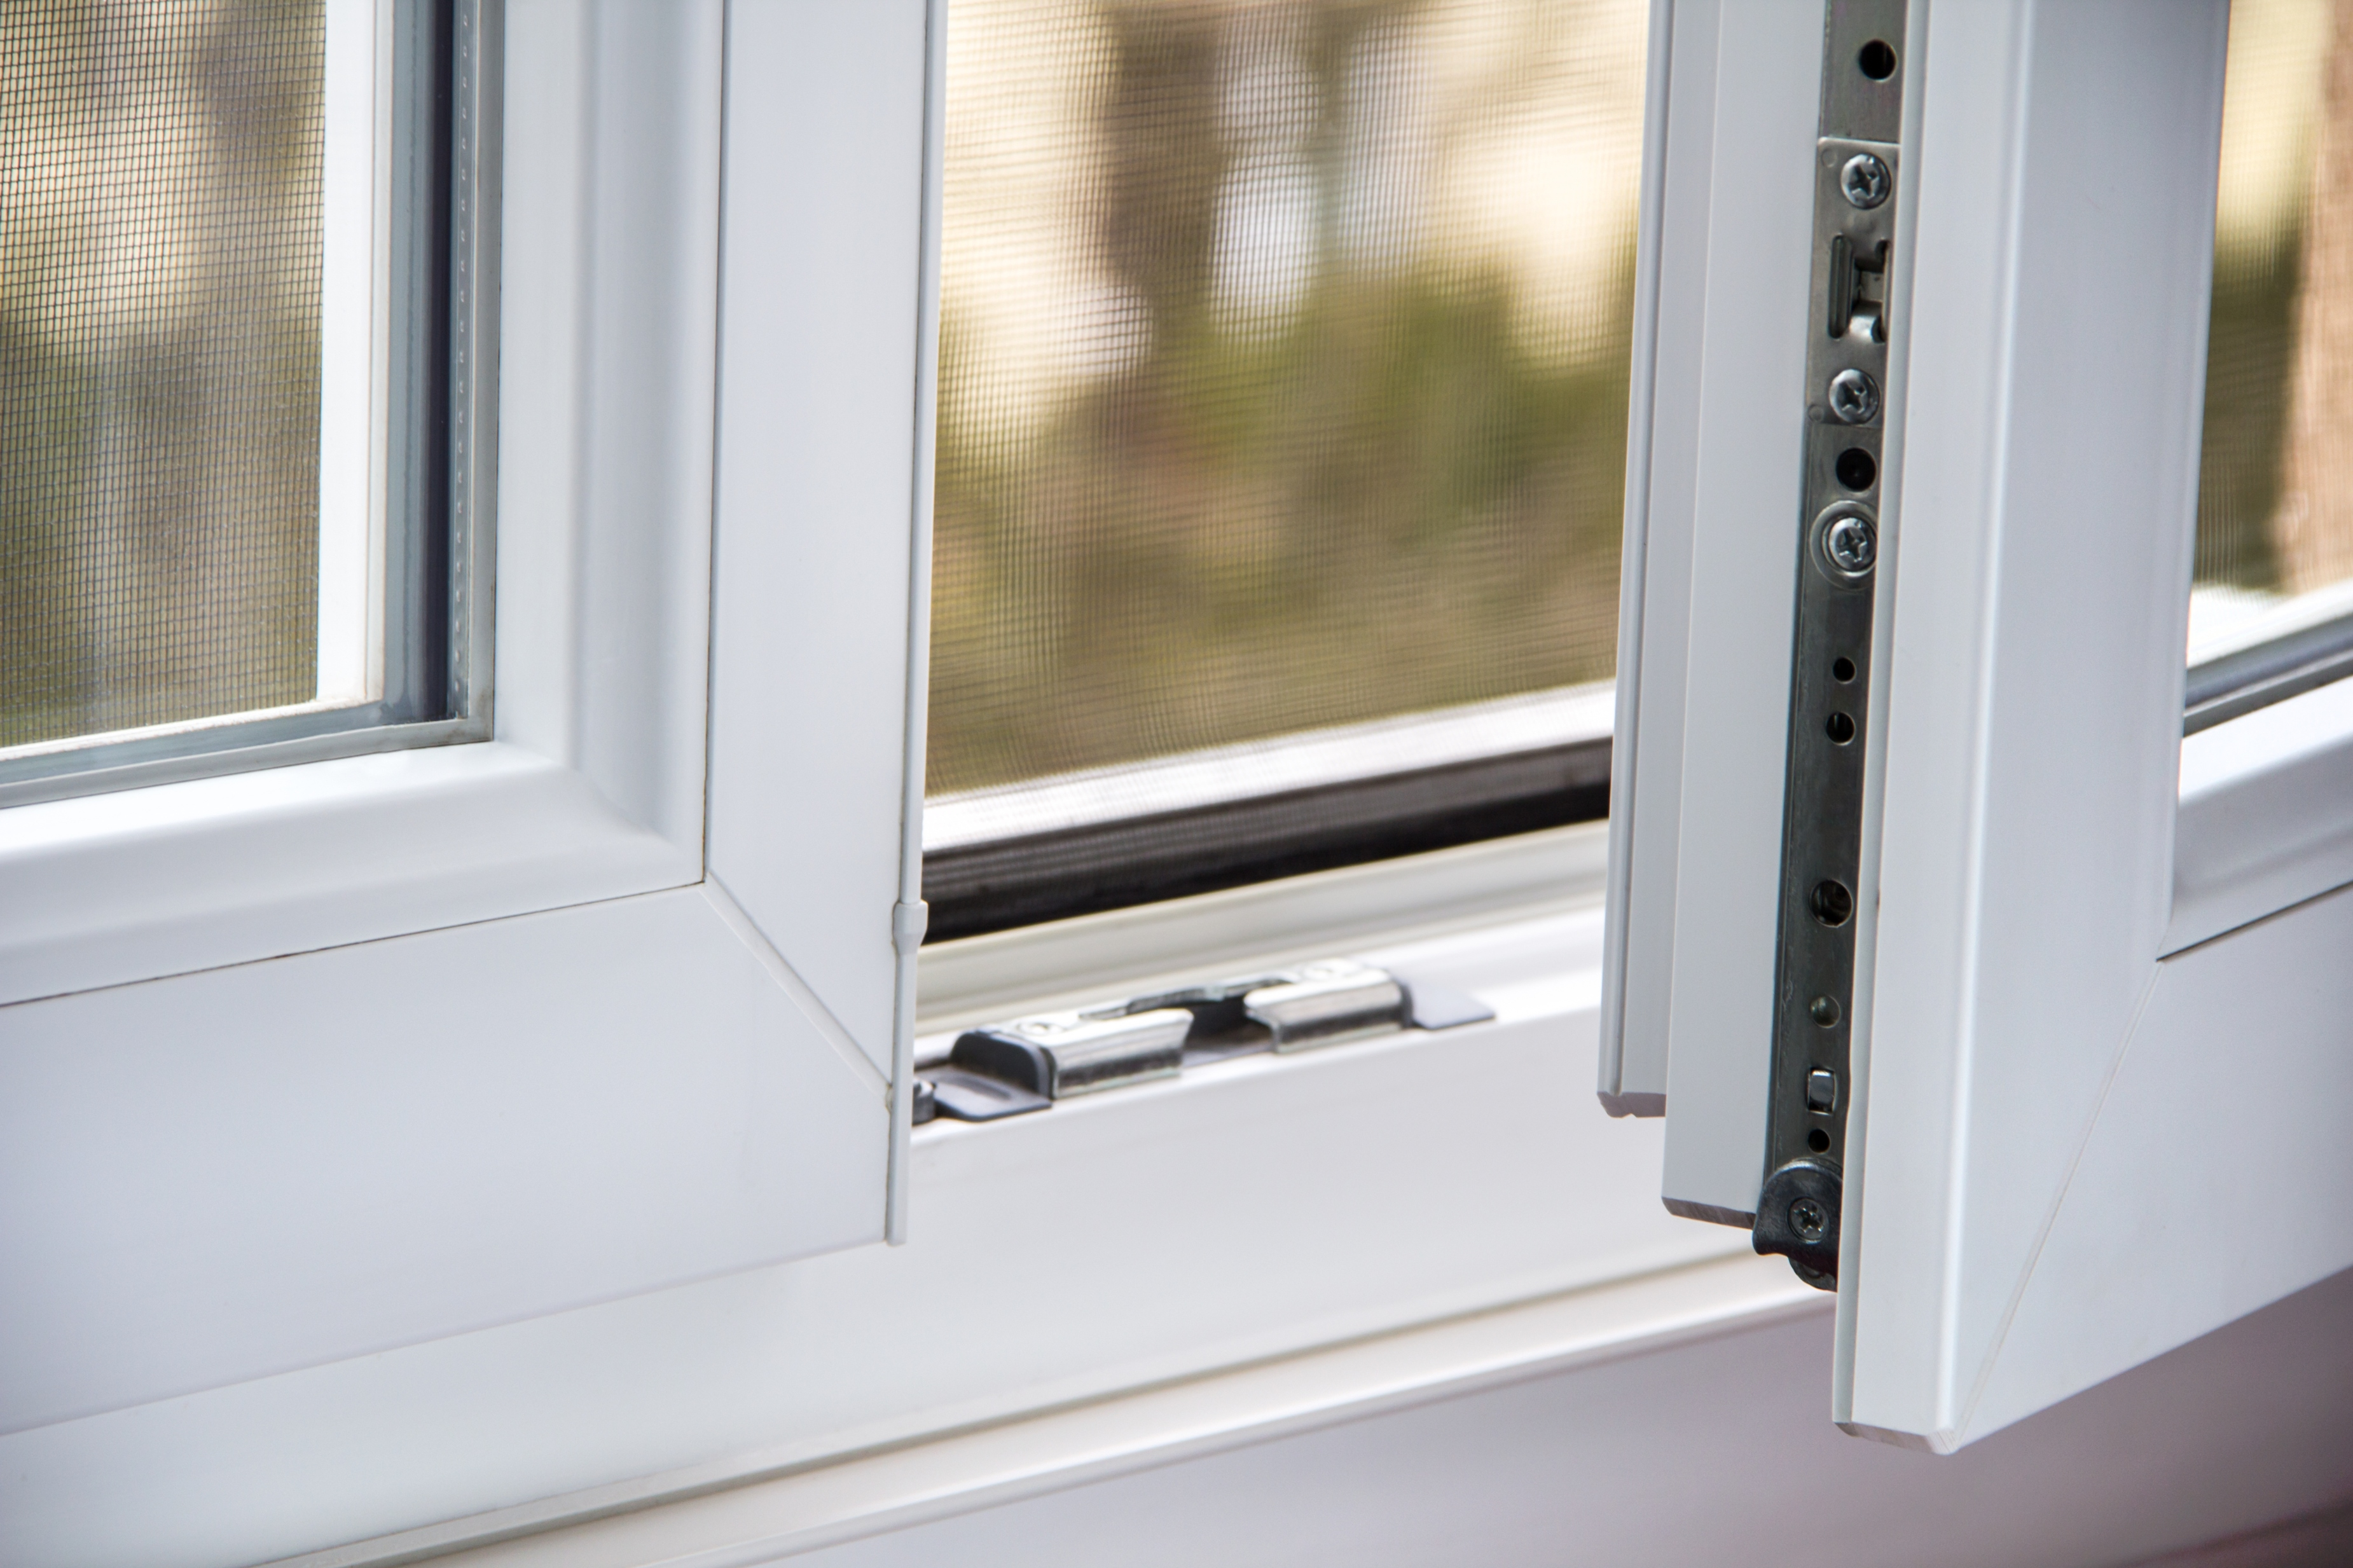 Window Security System